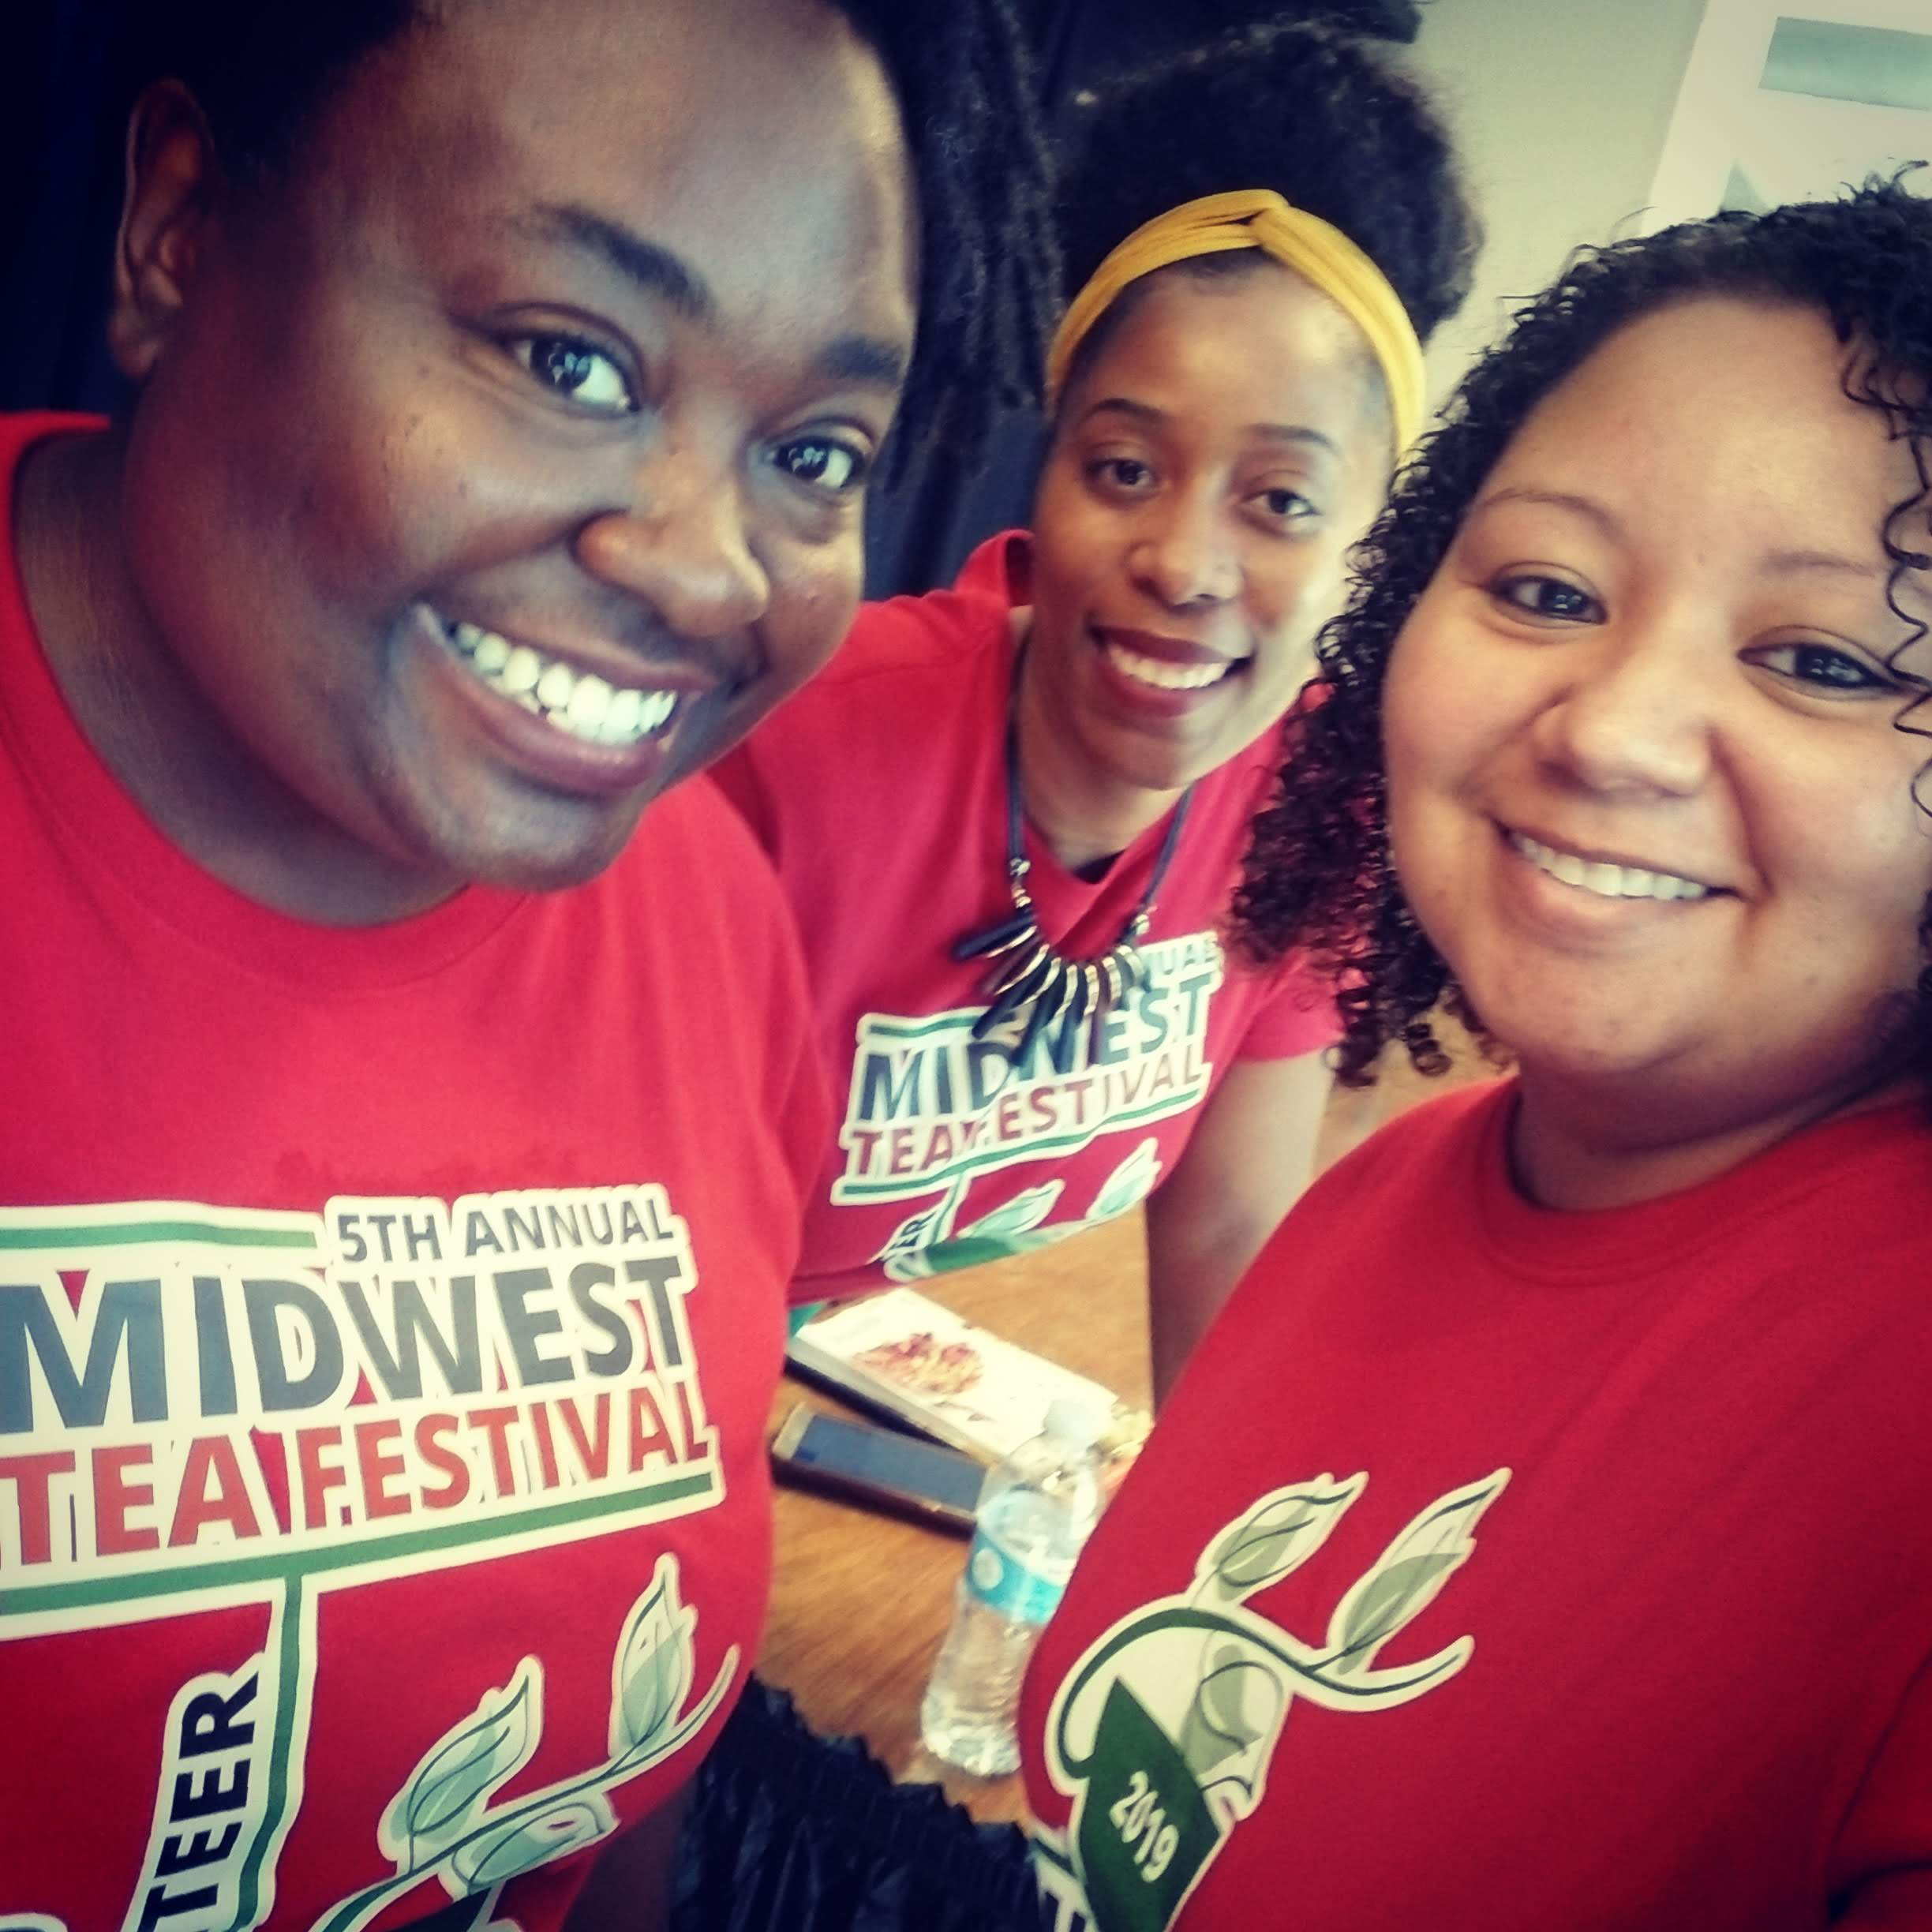 2019 Midwest Tea Fest Volunteers